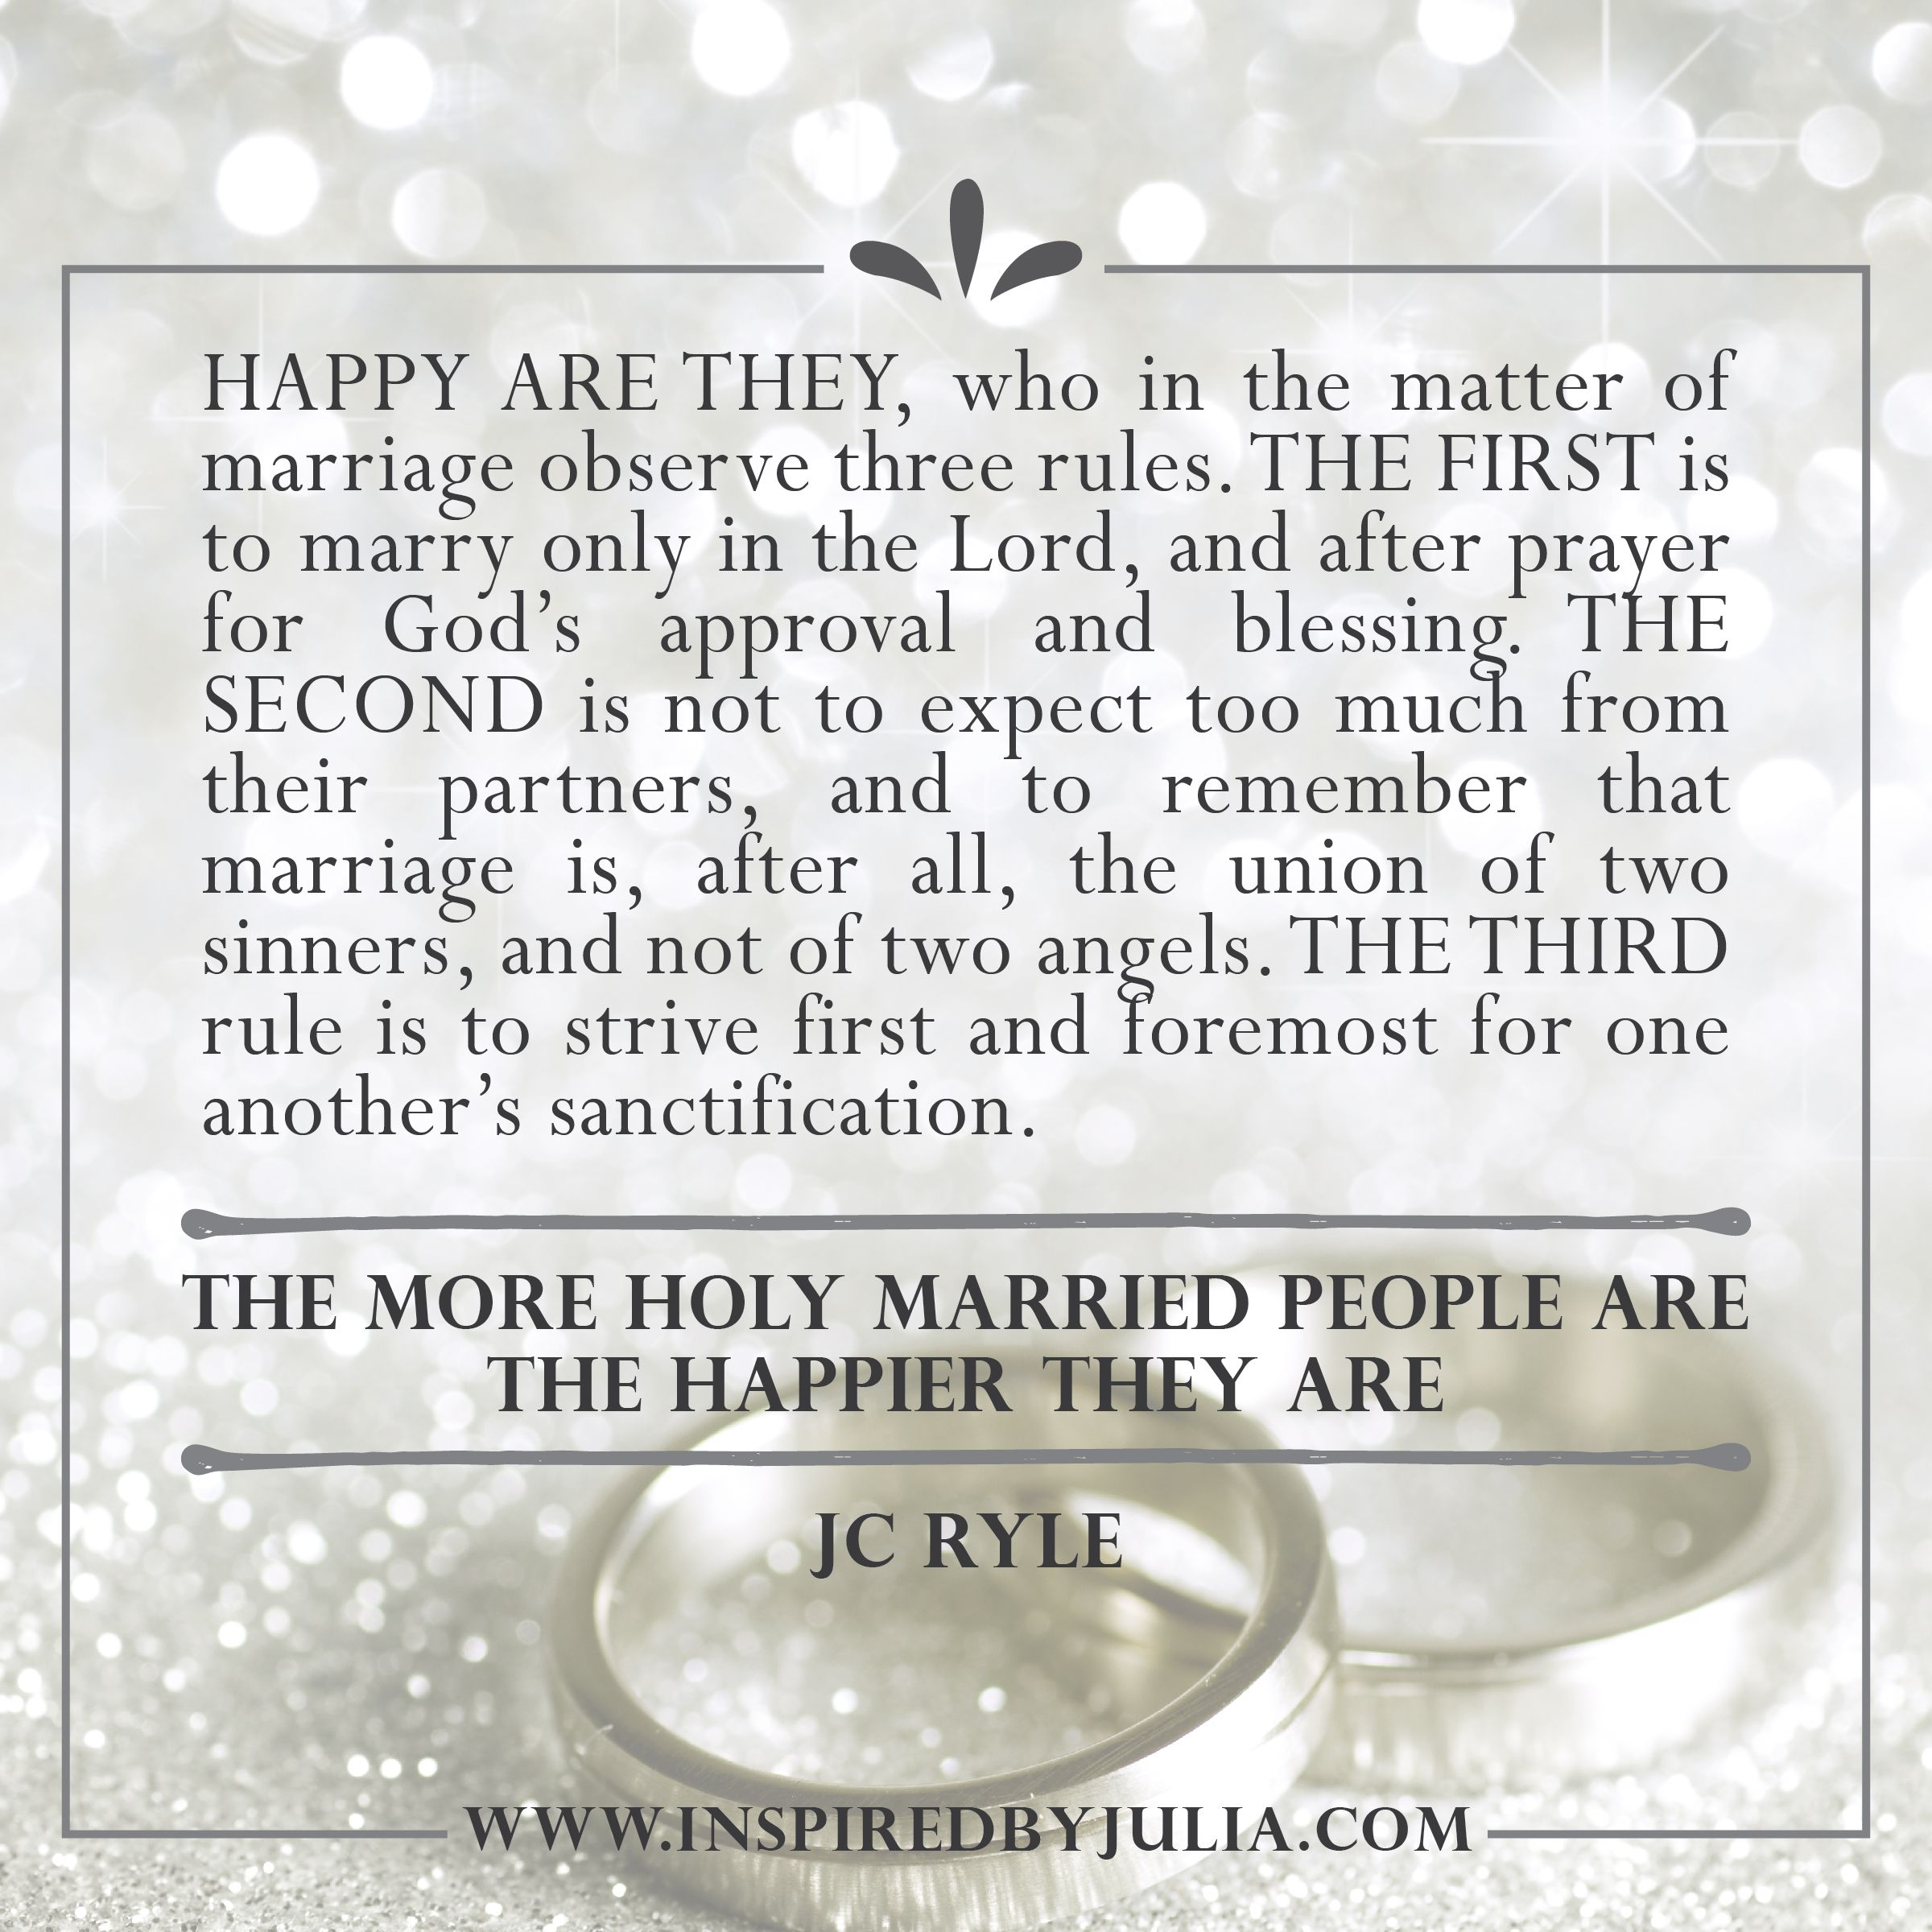 Inspirational Marriage Quotes Jc Ryle Quote On Marriage  Inspirational Word Art  Pinterest